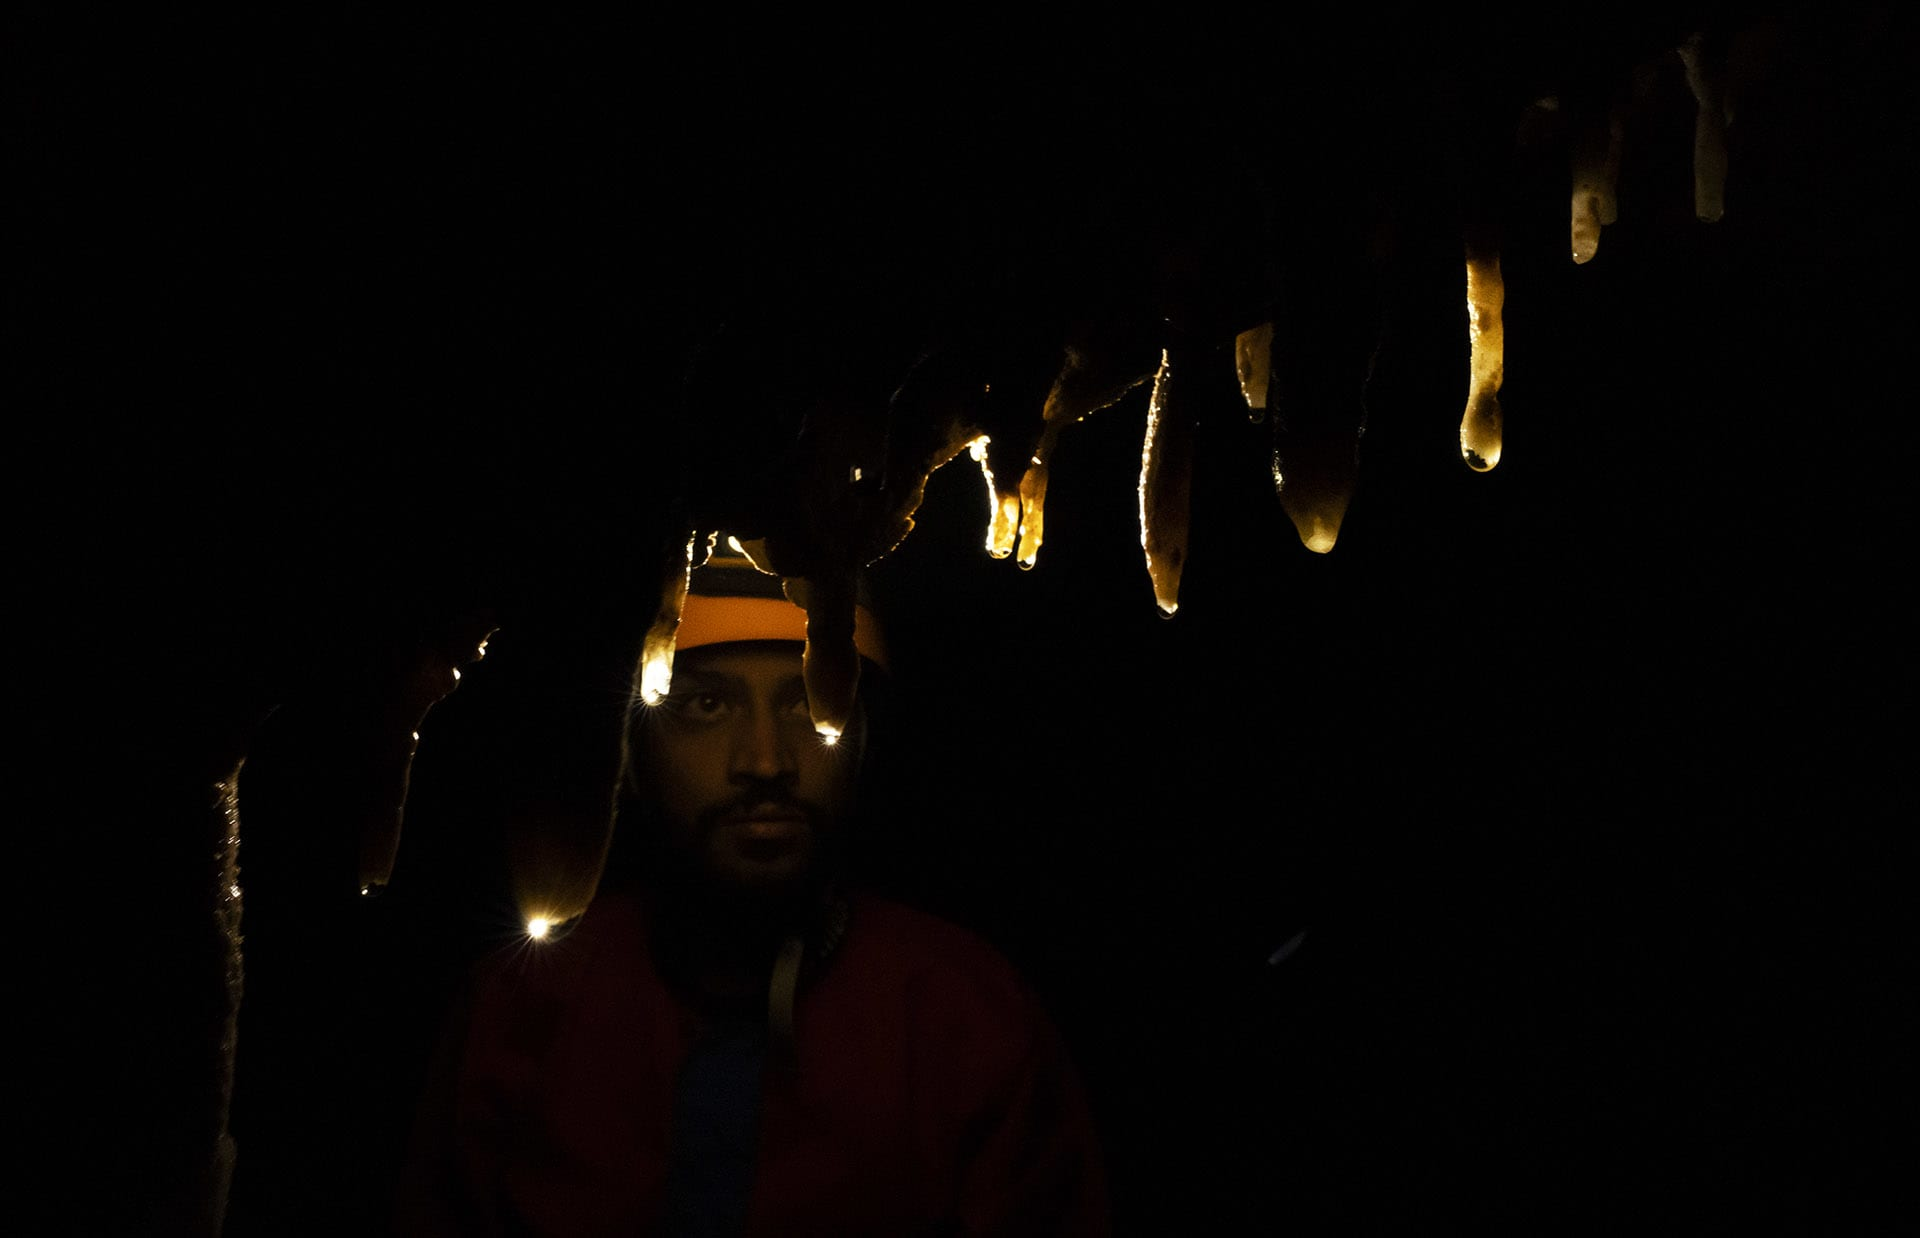 meghalaya-caves-formation-stalactites-drop-by-slow-drop